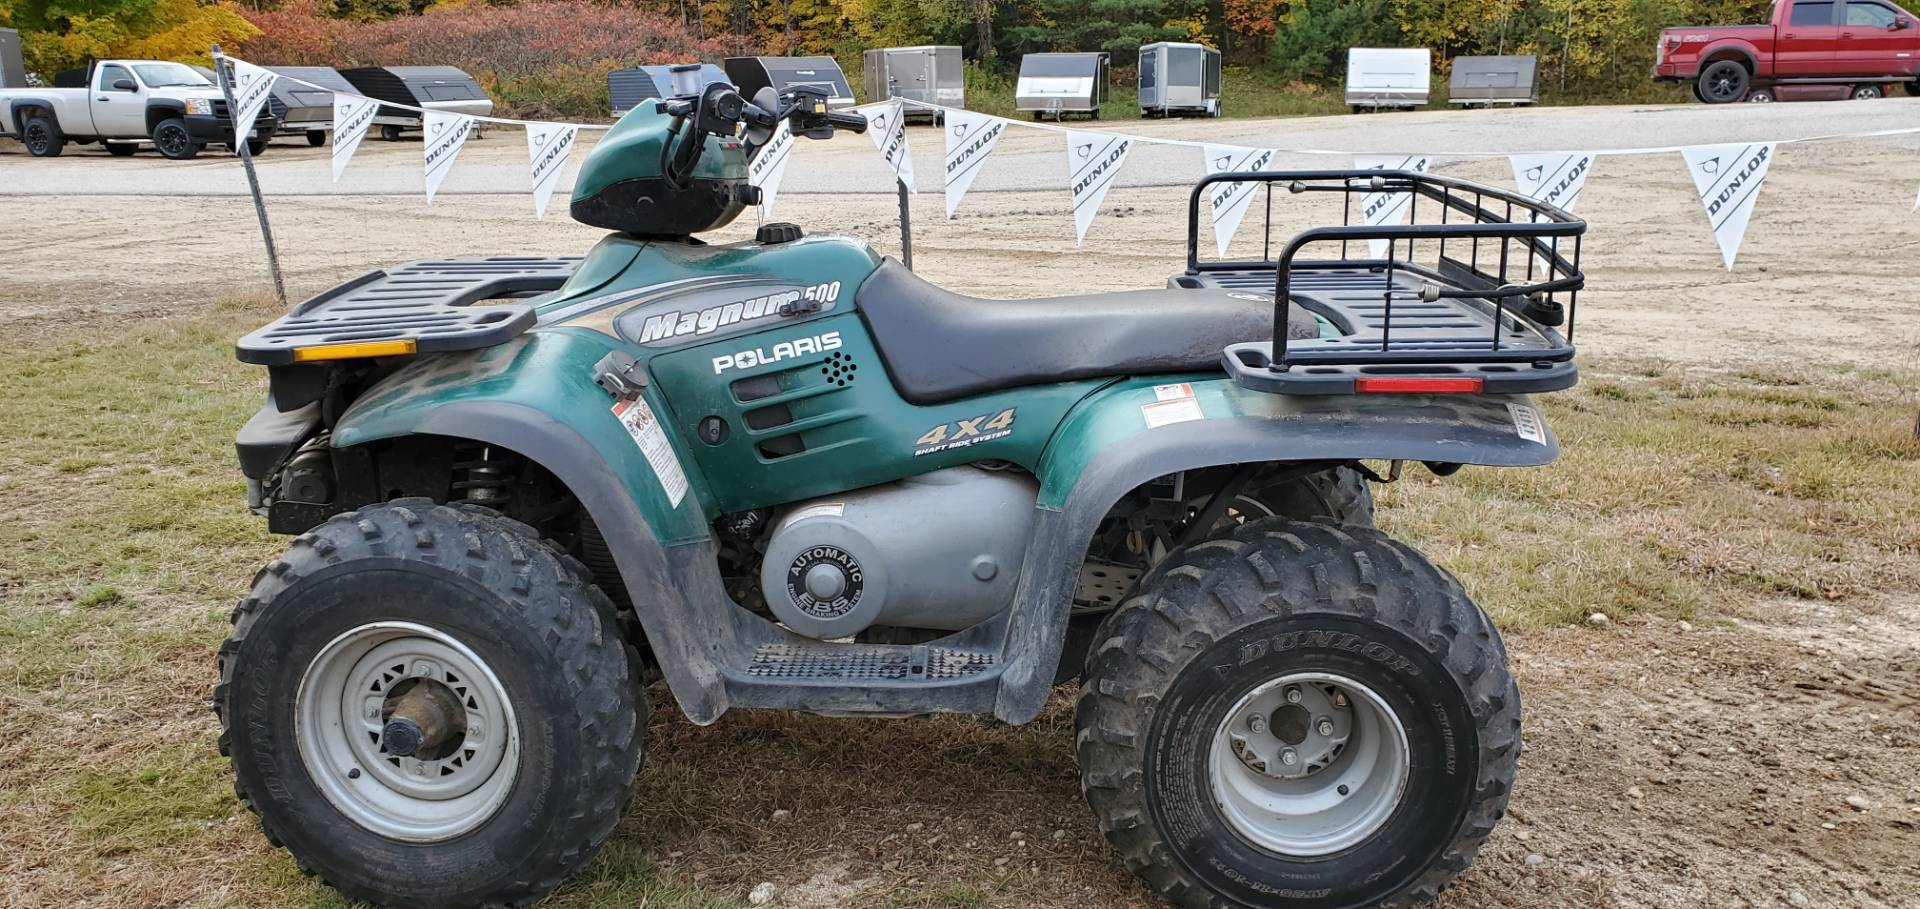 2000 Polaris Magnum 500 in Tamworth, New Hampshire - Photo 2